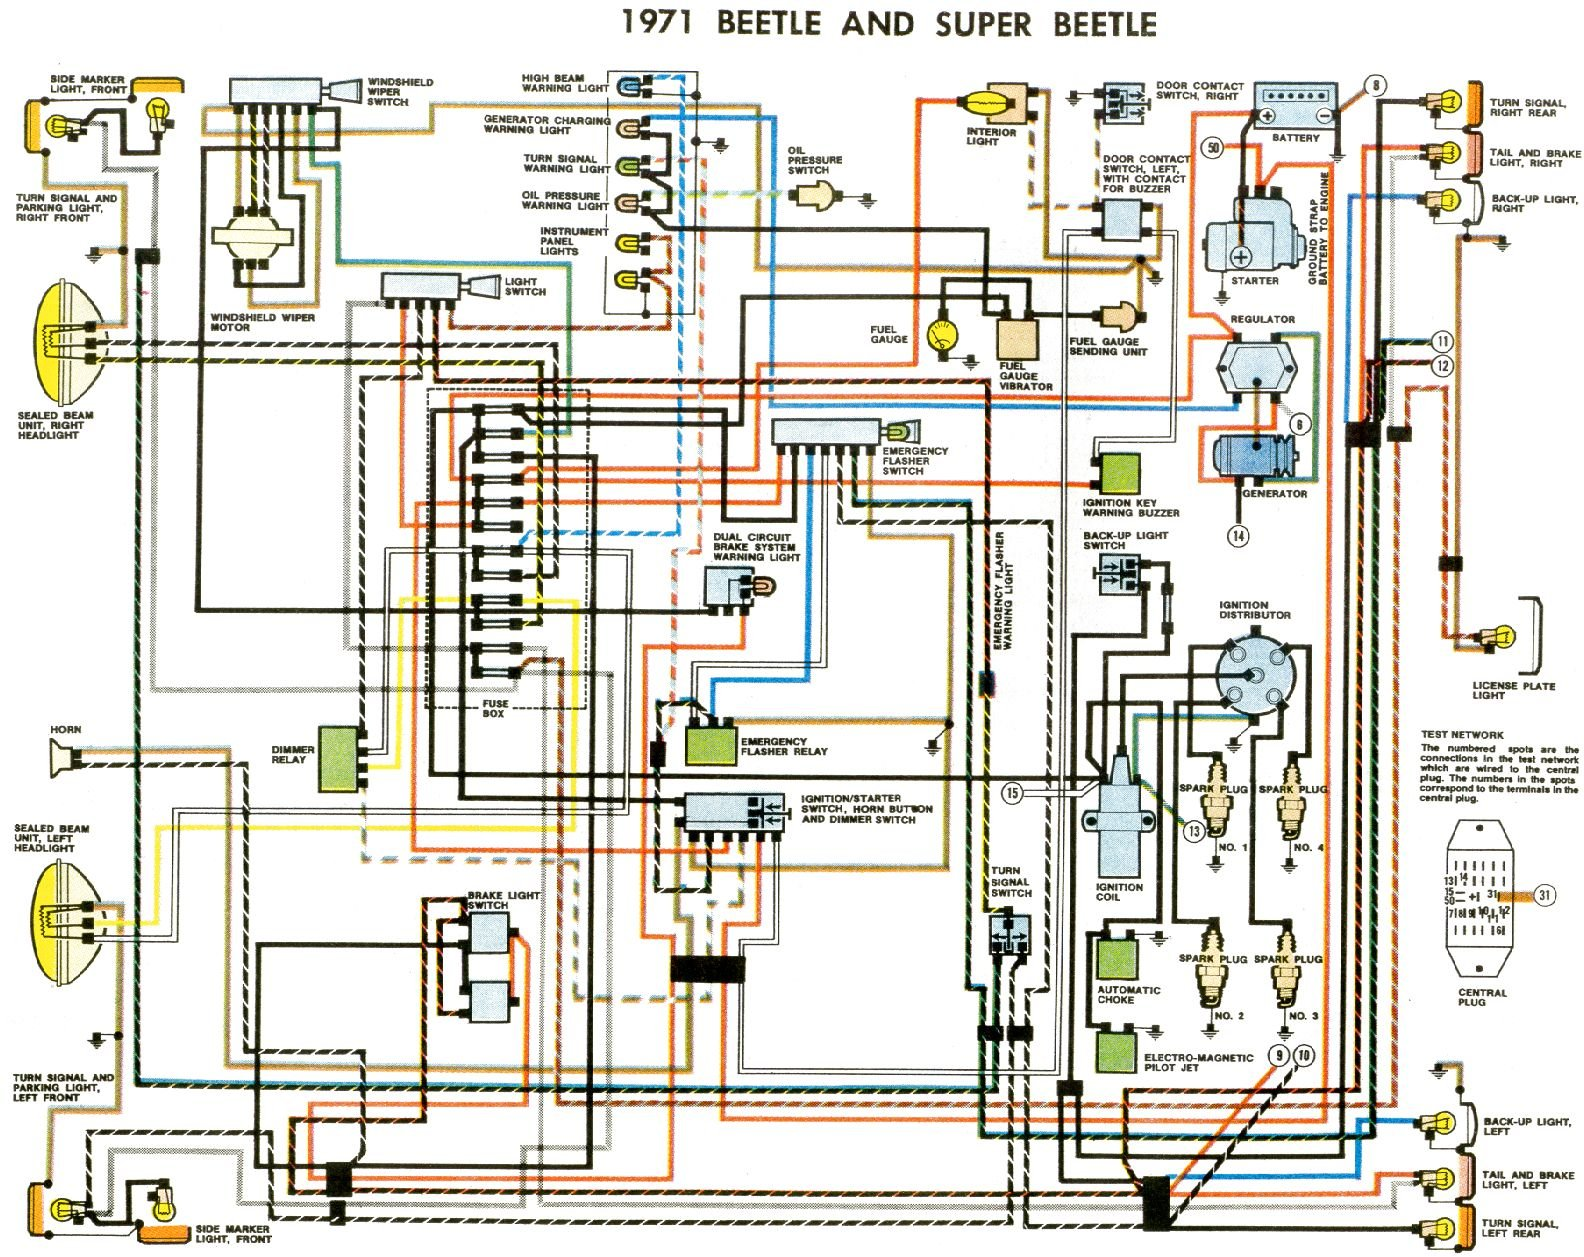 bug_71 1971 beetle wiring diagram (usa) thegoldenbug com 1973 vw wiring diagram at mifinder.co